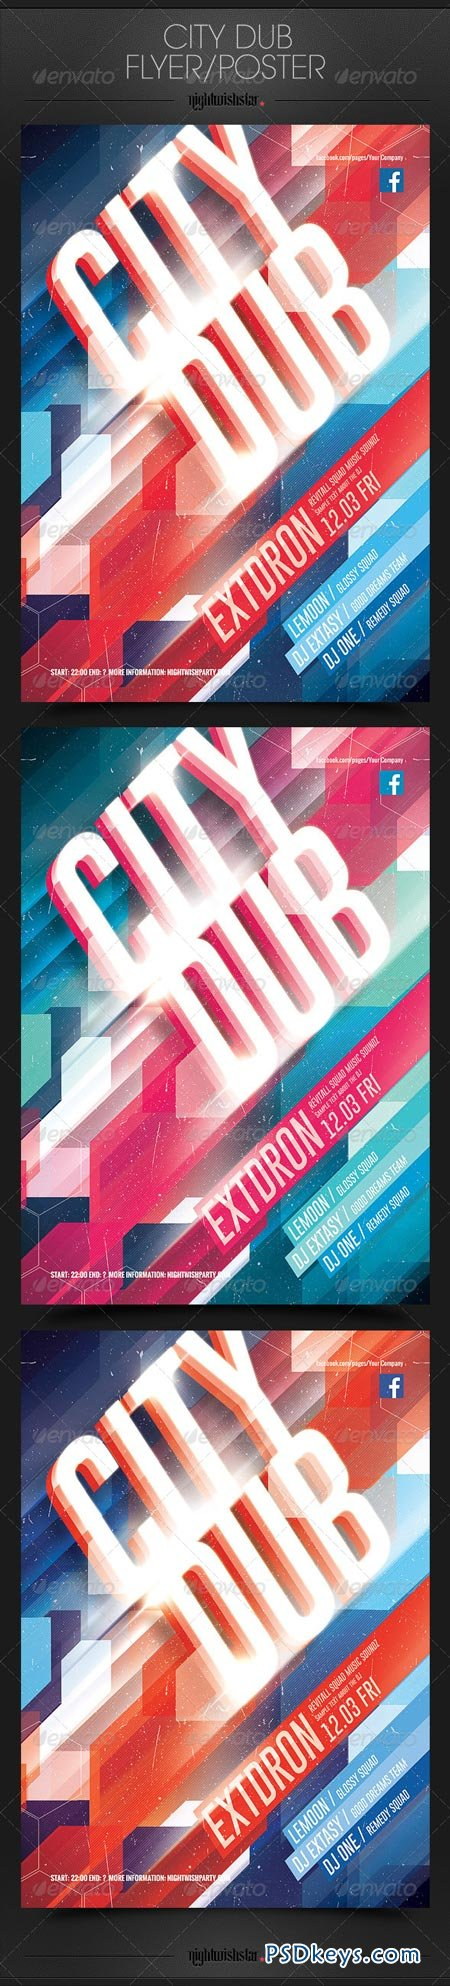 City Dub Party Poster Flyer 6903667